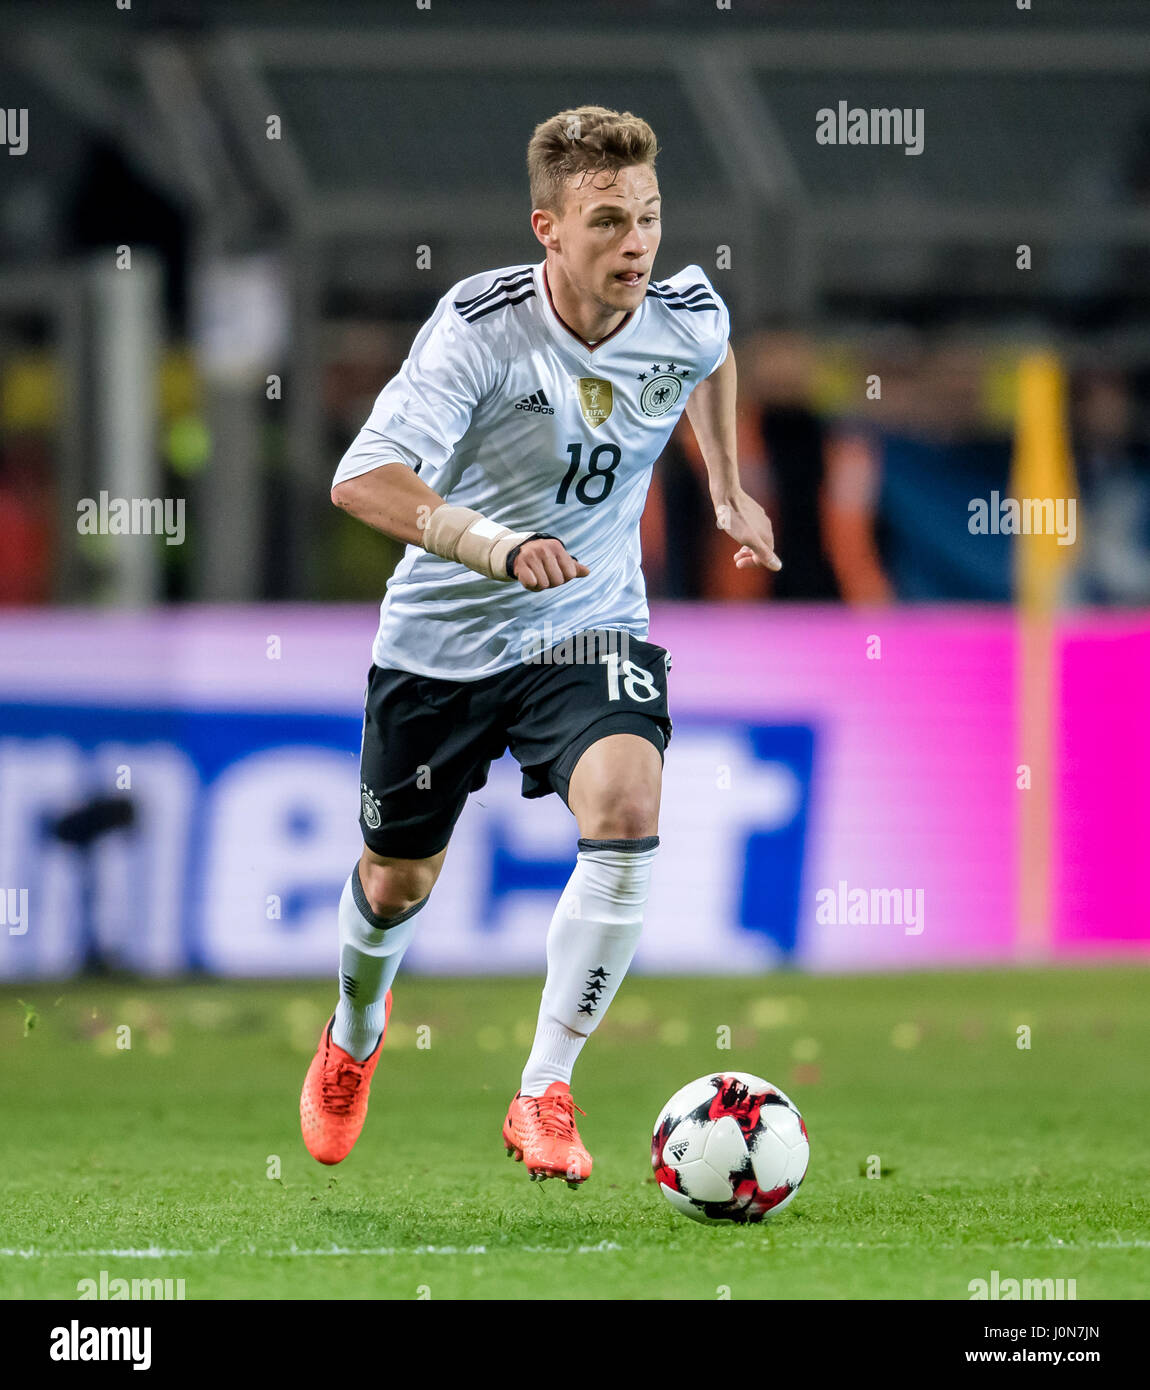 Germany s Joshua Kimmich in action during the national soccer